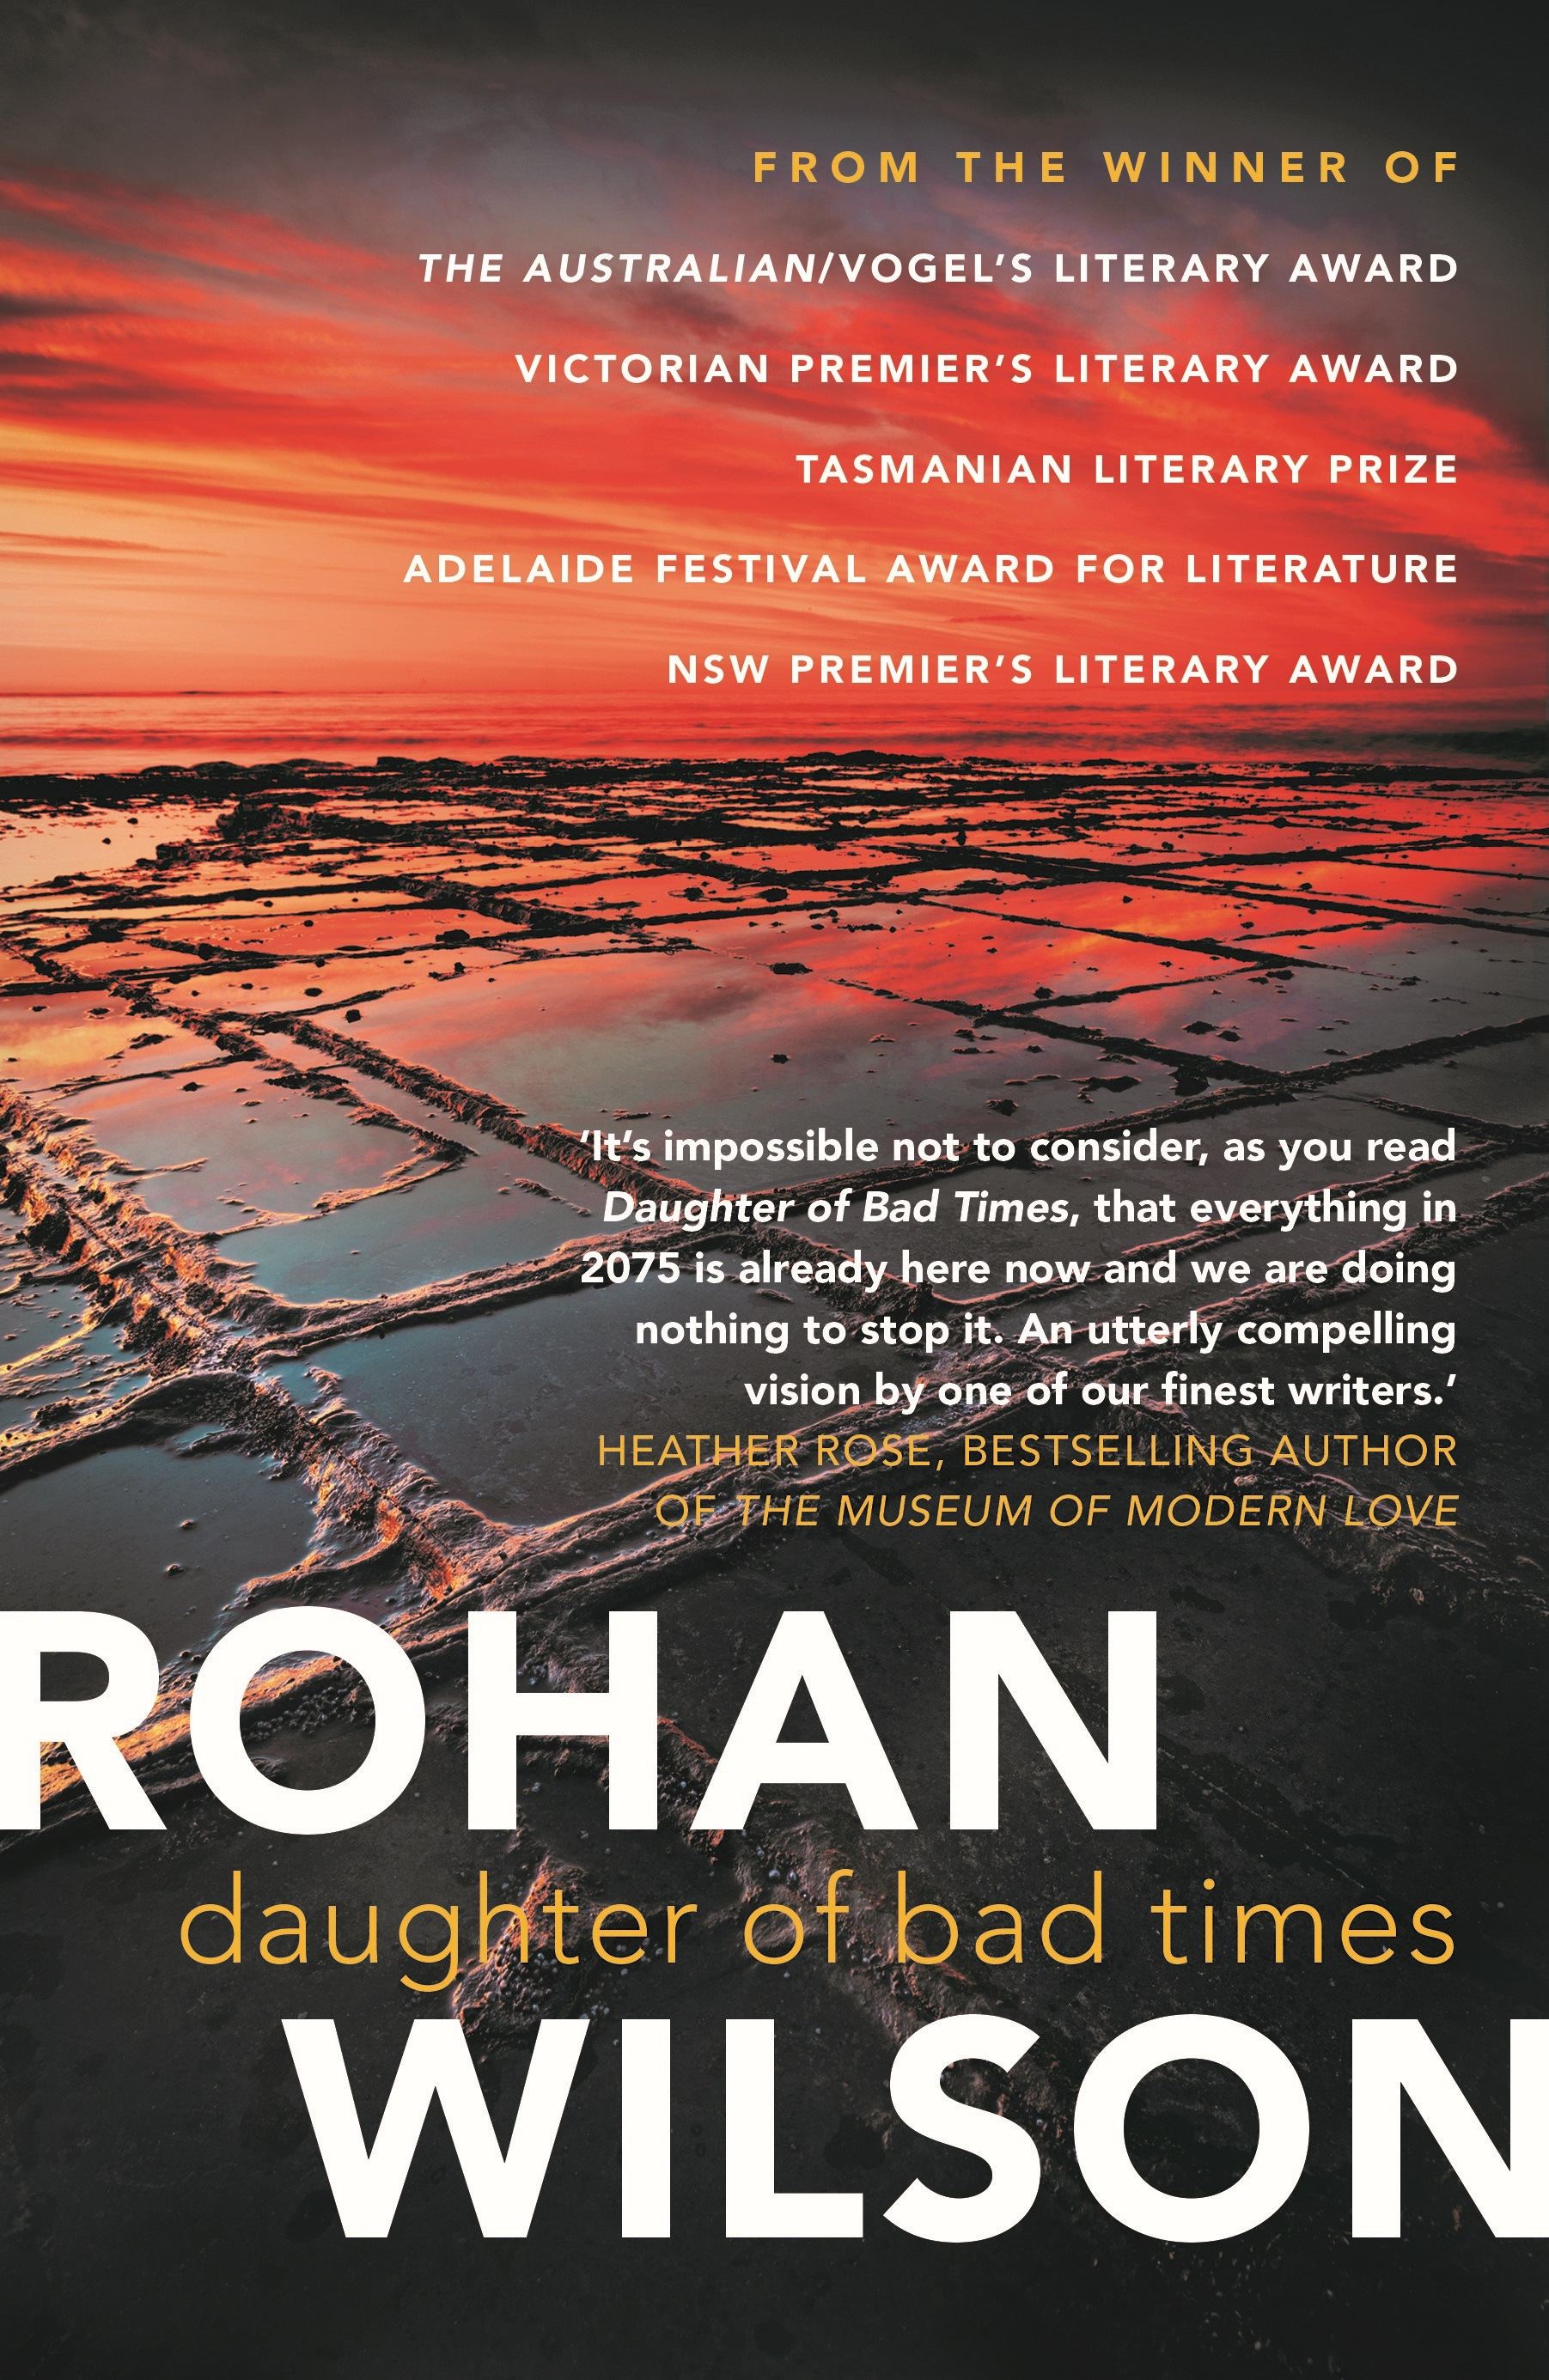 Cover image of 'Daughter of Bad Times' by Rohan Wilson